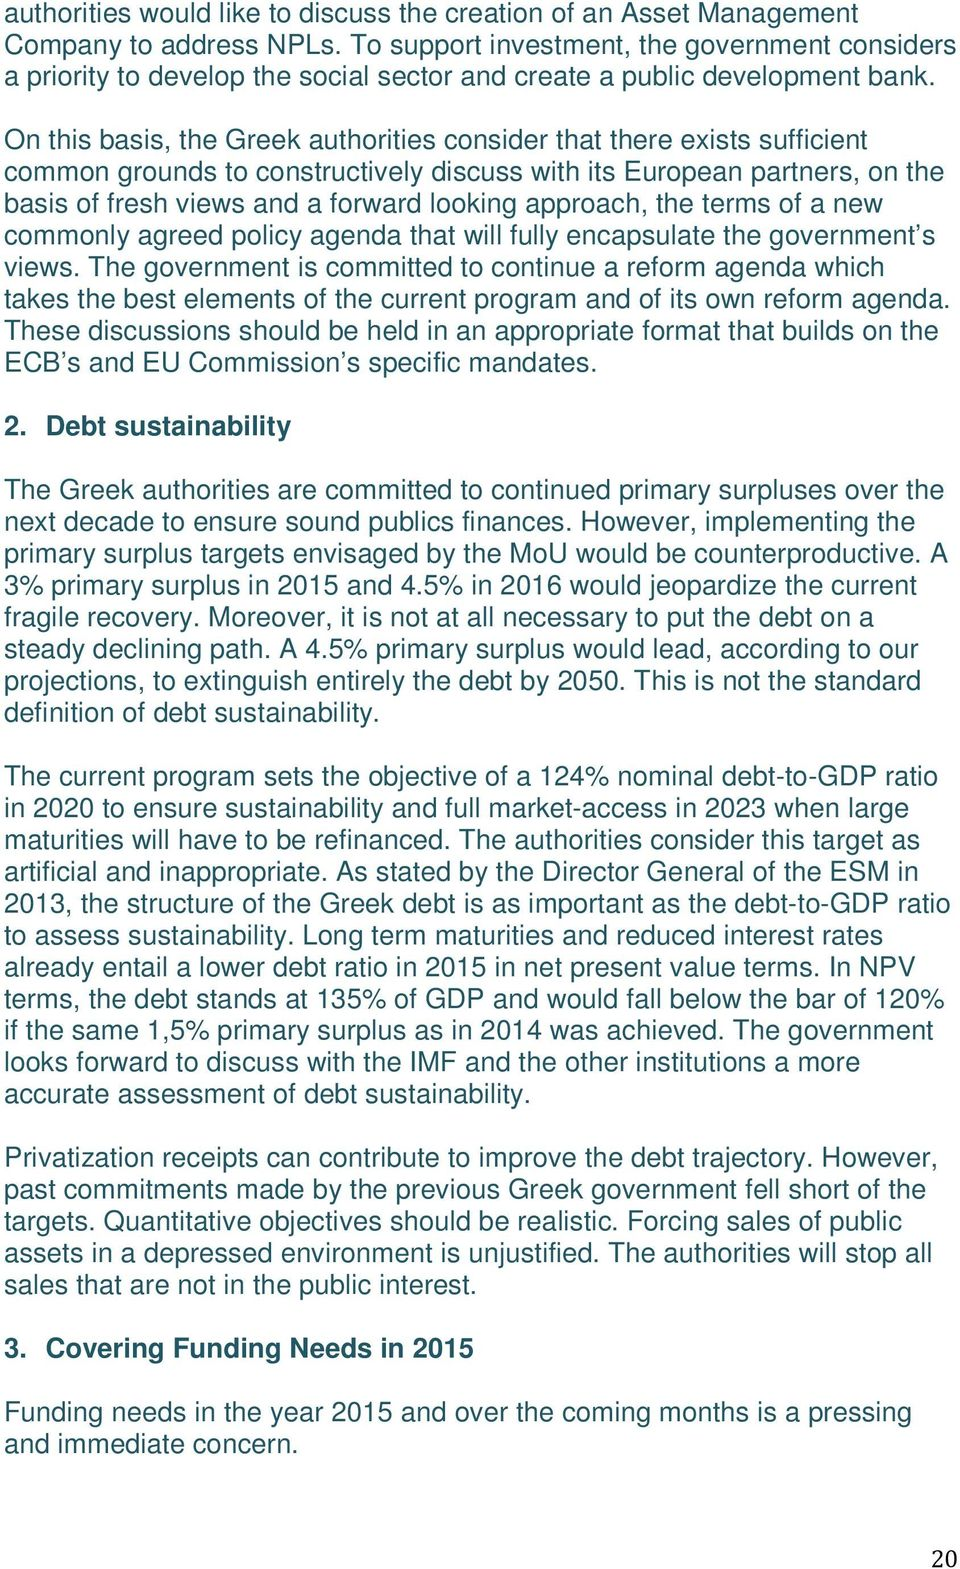 On this basis, the Greek authorities consider that there exists sufficient common grounds to constructively discuss with its European partners, on the basis of fresh views and a forward looking